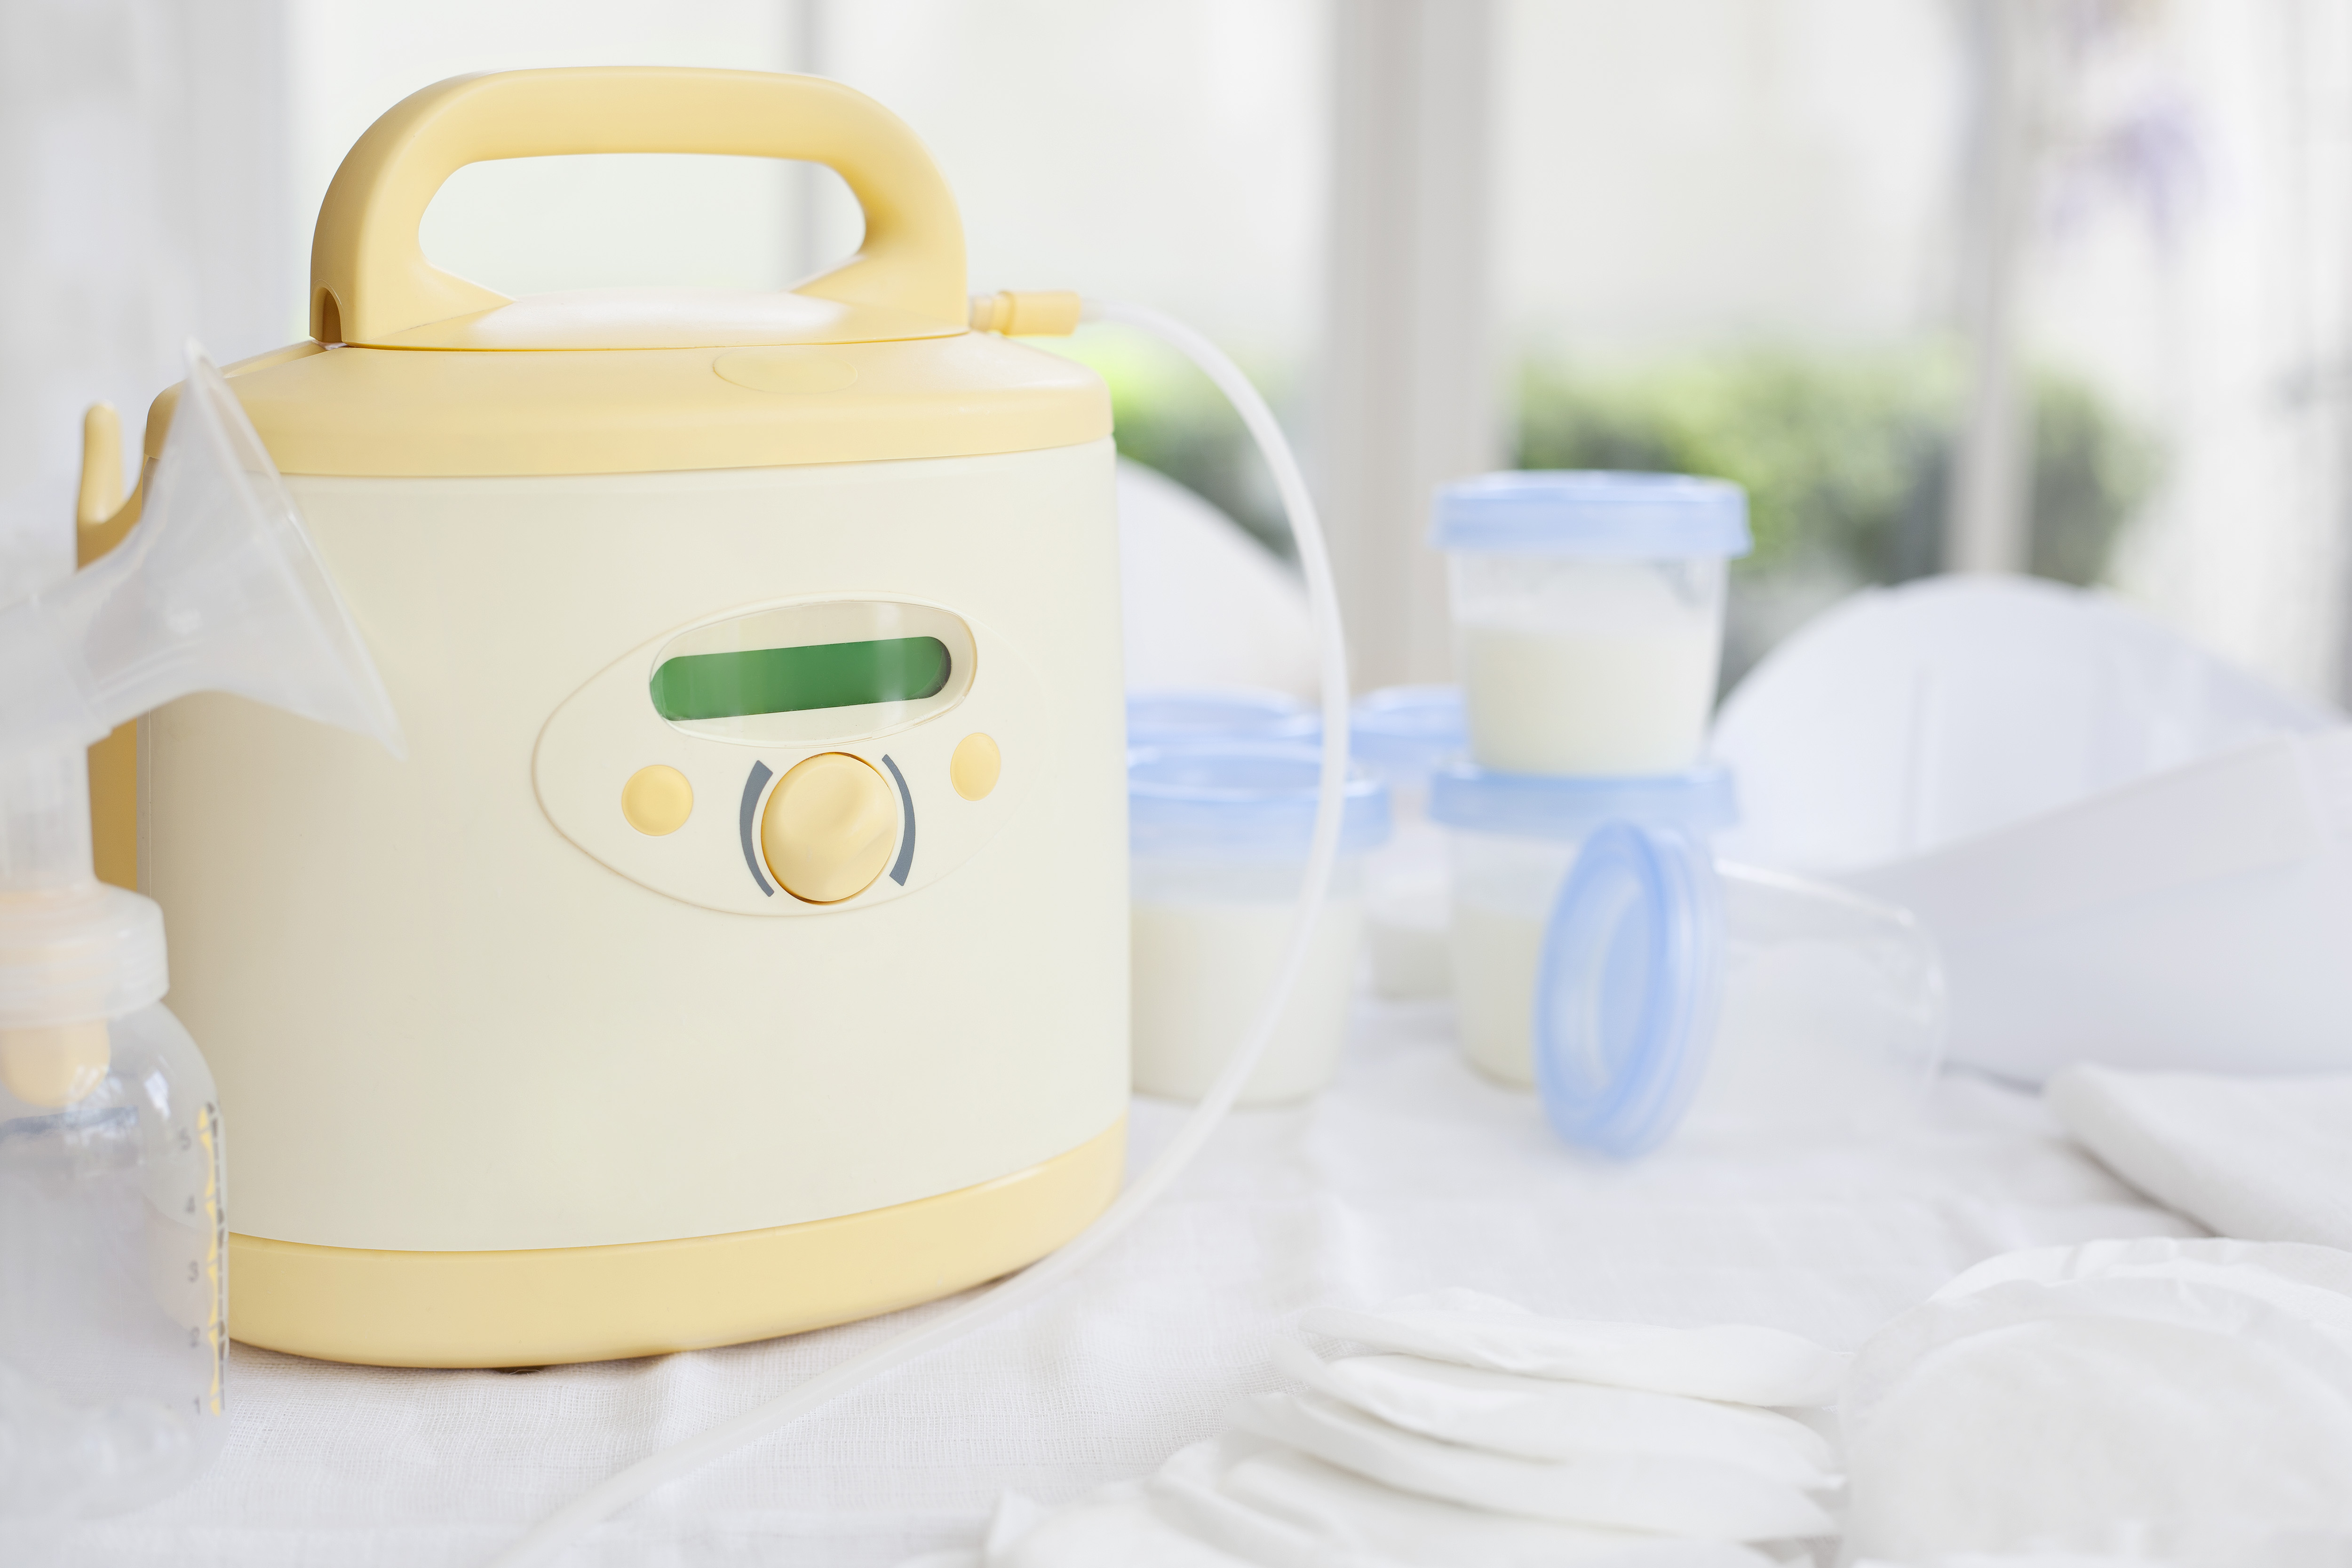 Did you know that you can qualify to get a FREE breast pump through your insurance? Changes in the laws have opened the door to nursing moms, IF you can navigate the red tape and hurdles involved. Here's how! #Breastfeeding #BreastPump #Free